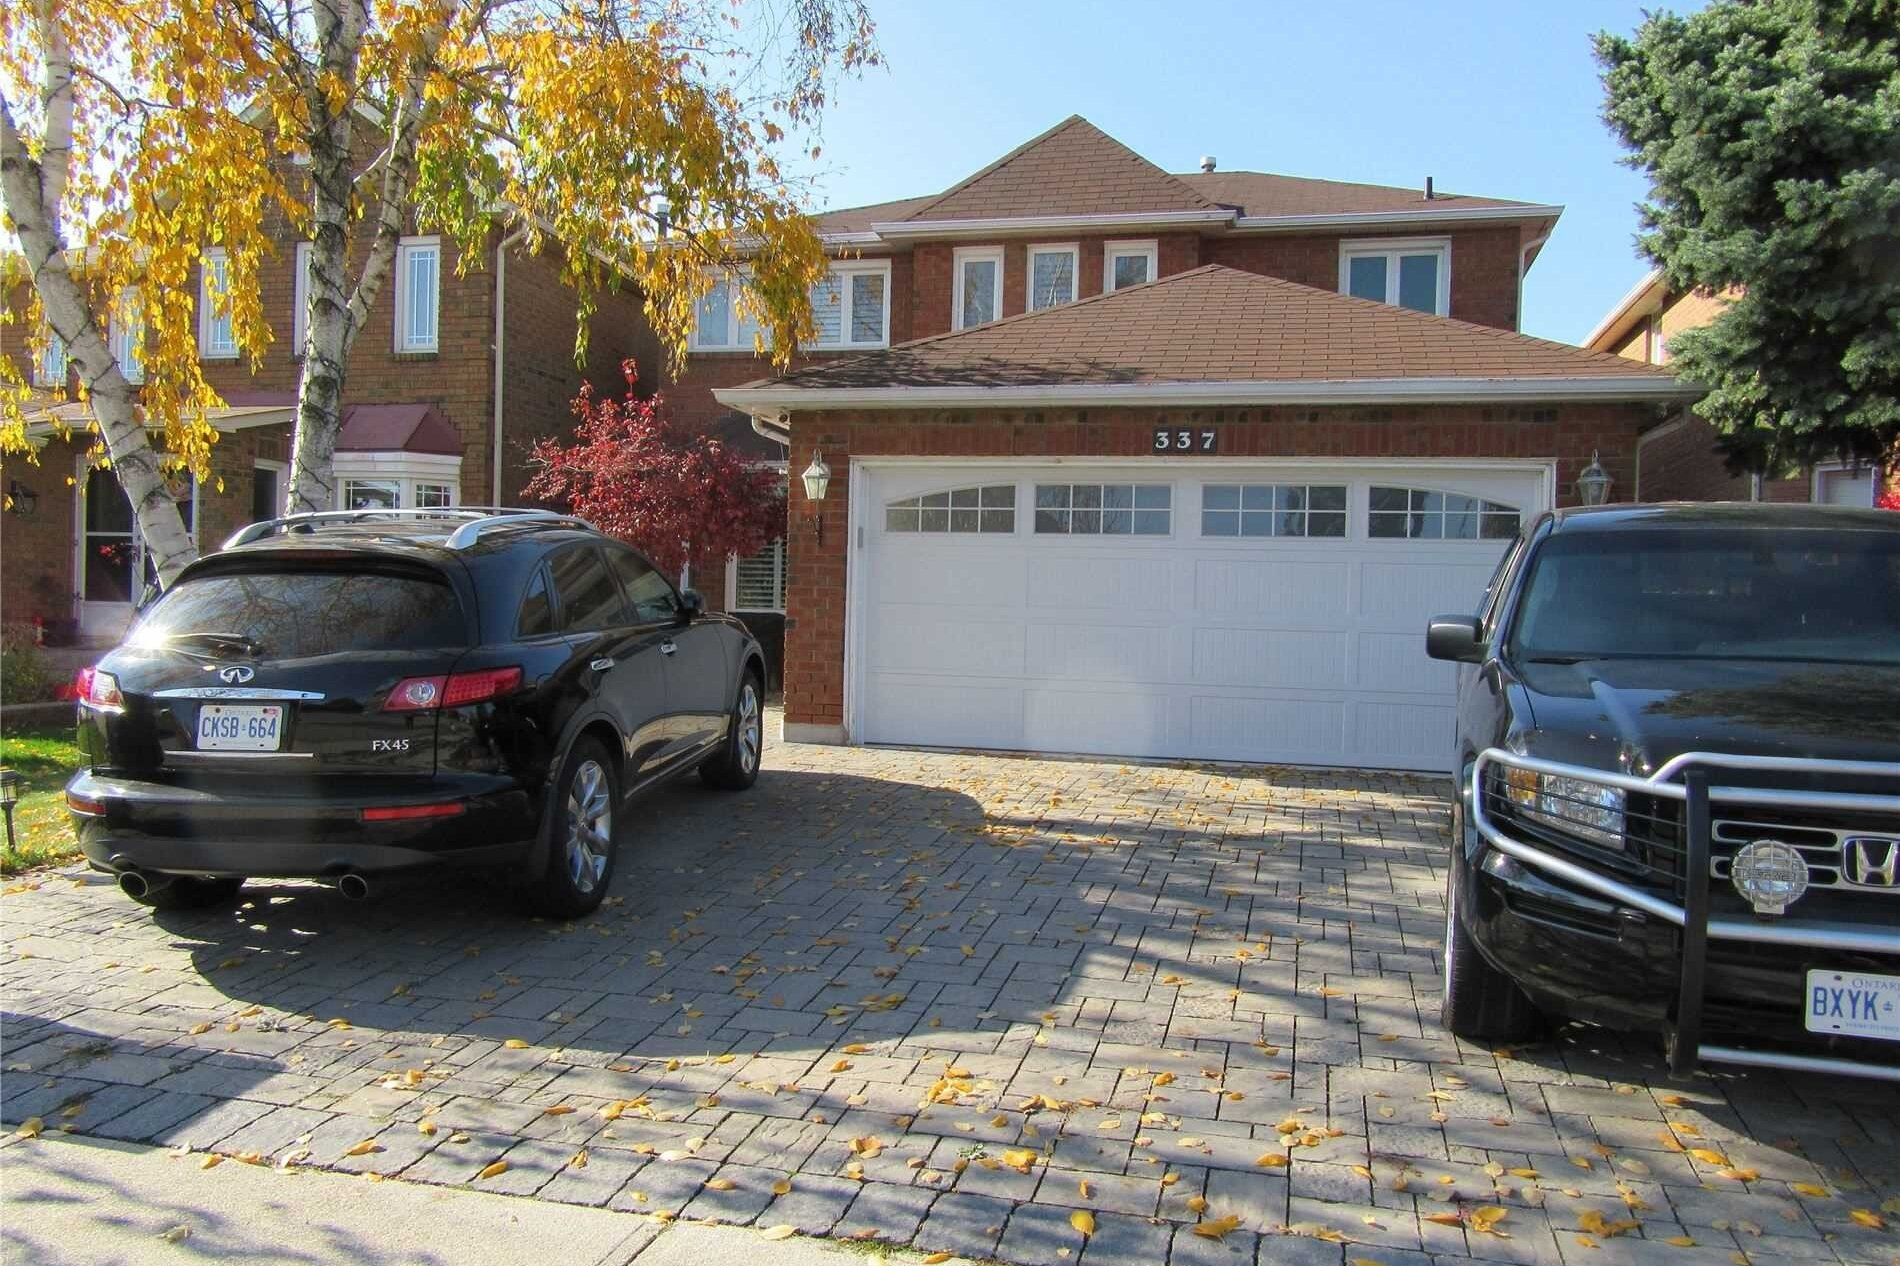 House for sale at 337 Nahani Wy Mississauga Ontario - MLS: W4970564